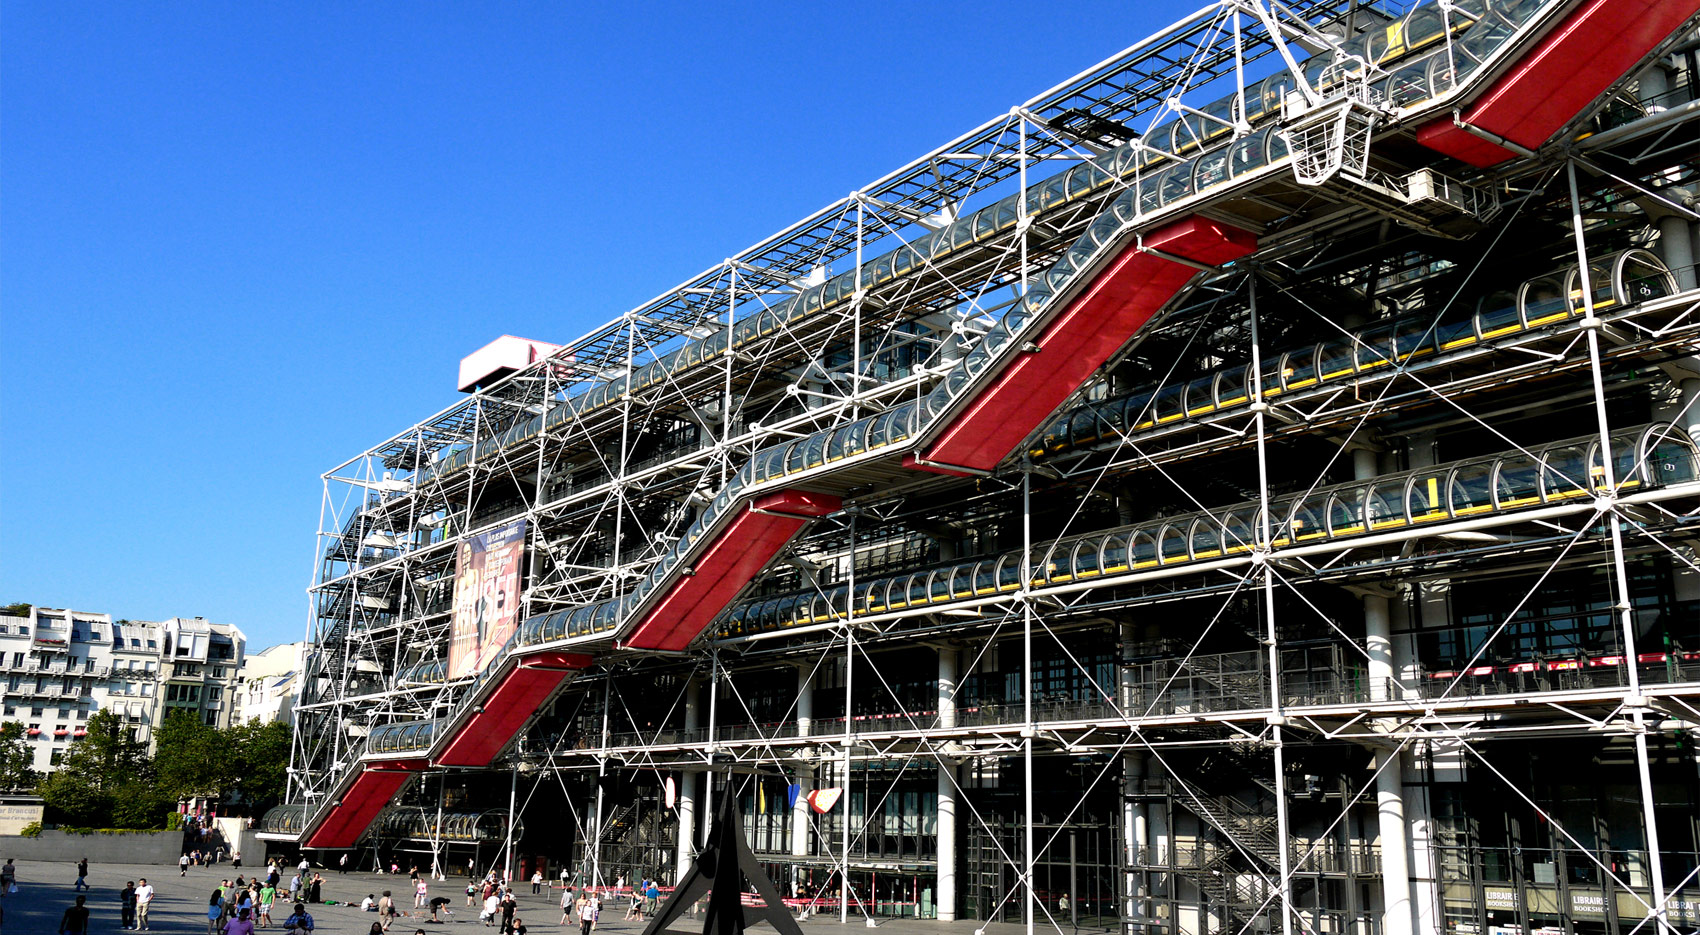 Centre Pmpidou Paris